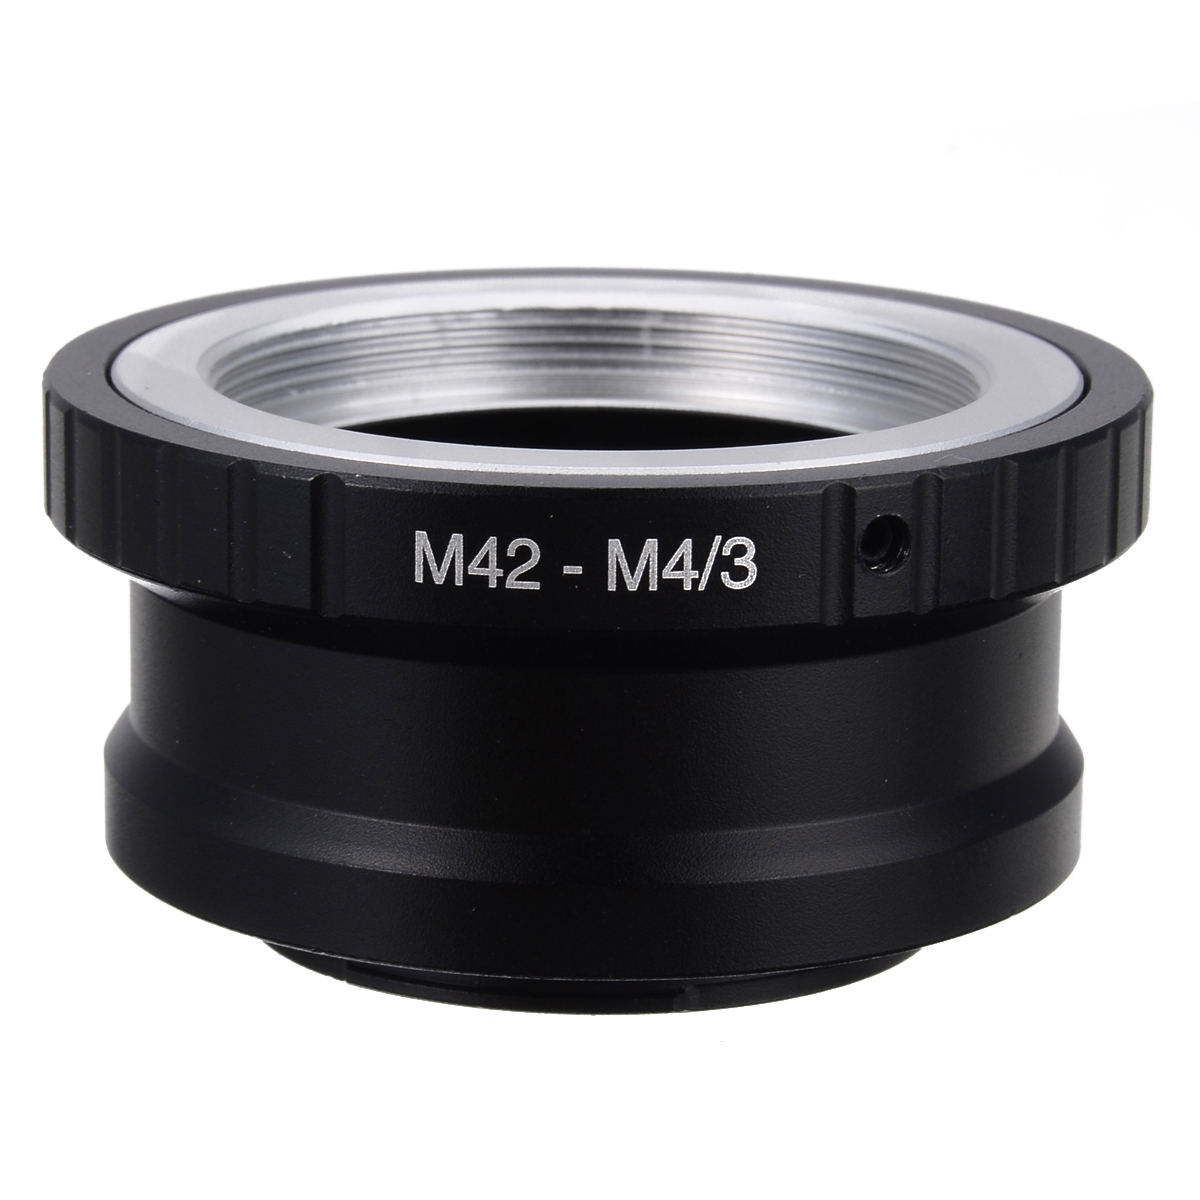 Mount Camera Accessories Adapter Ring M42 Lens To An Micro 4/3 M4/3 MFT For Olympus Pen For Panasonic Lumix G